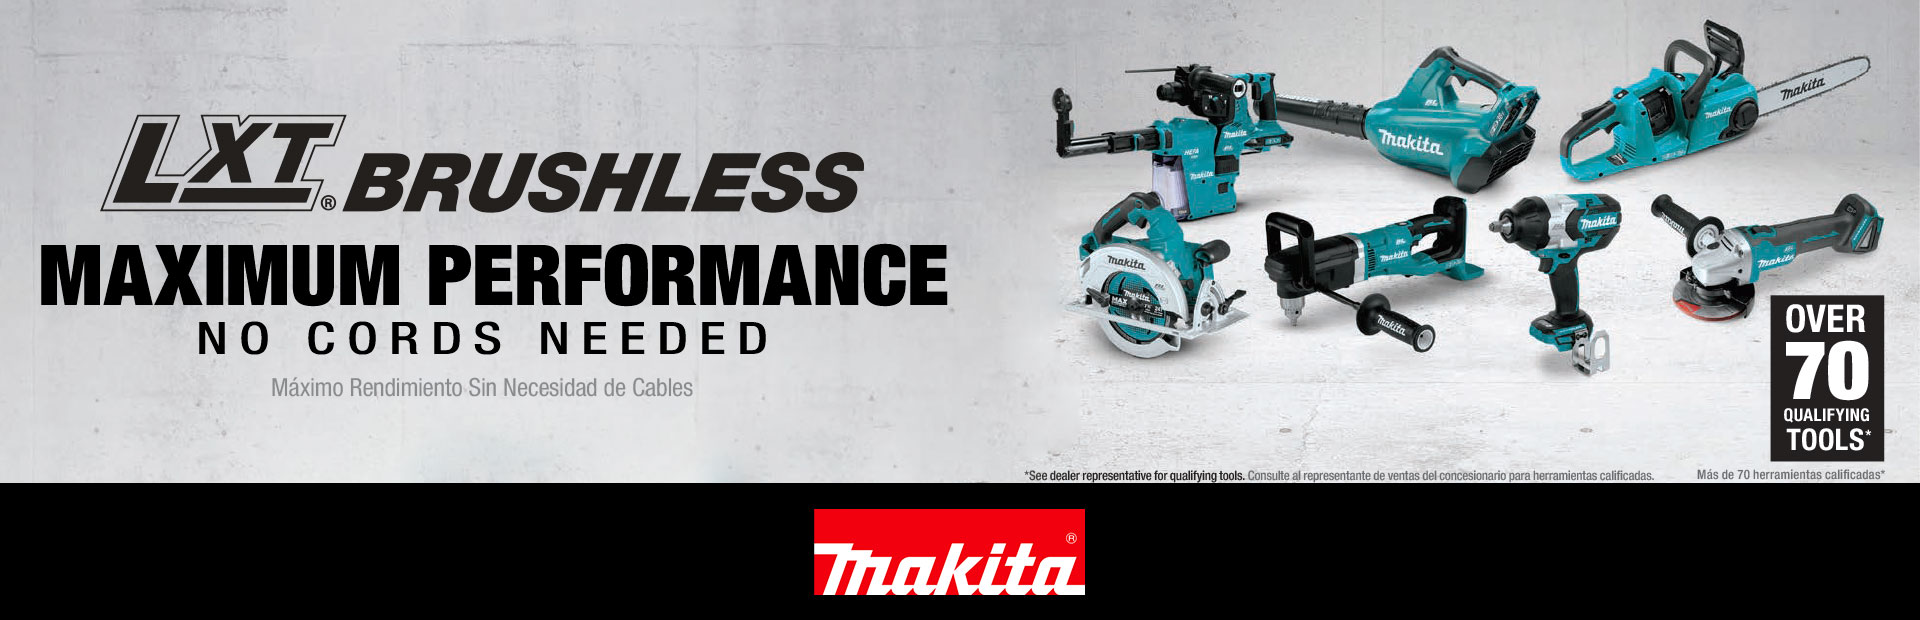 Makita: Maximum Performance No Cords Needed